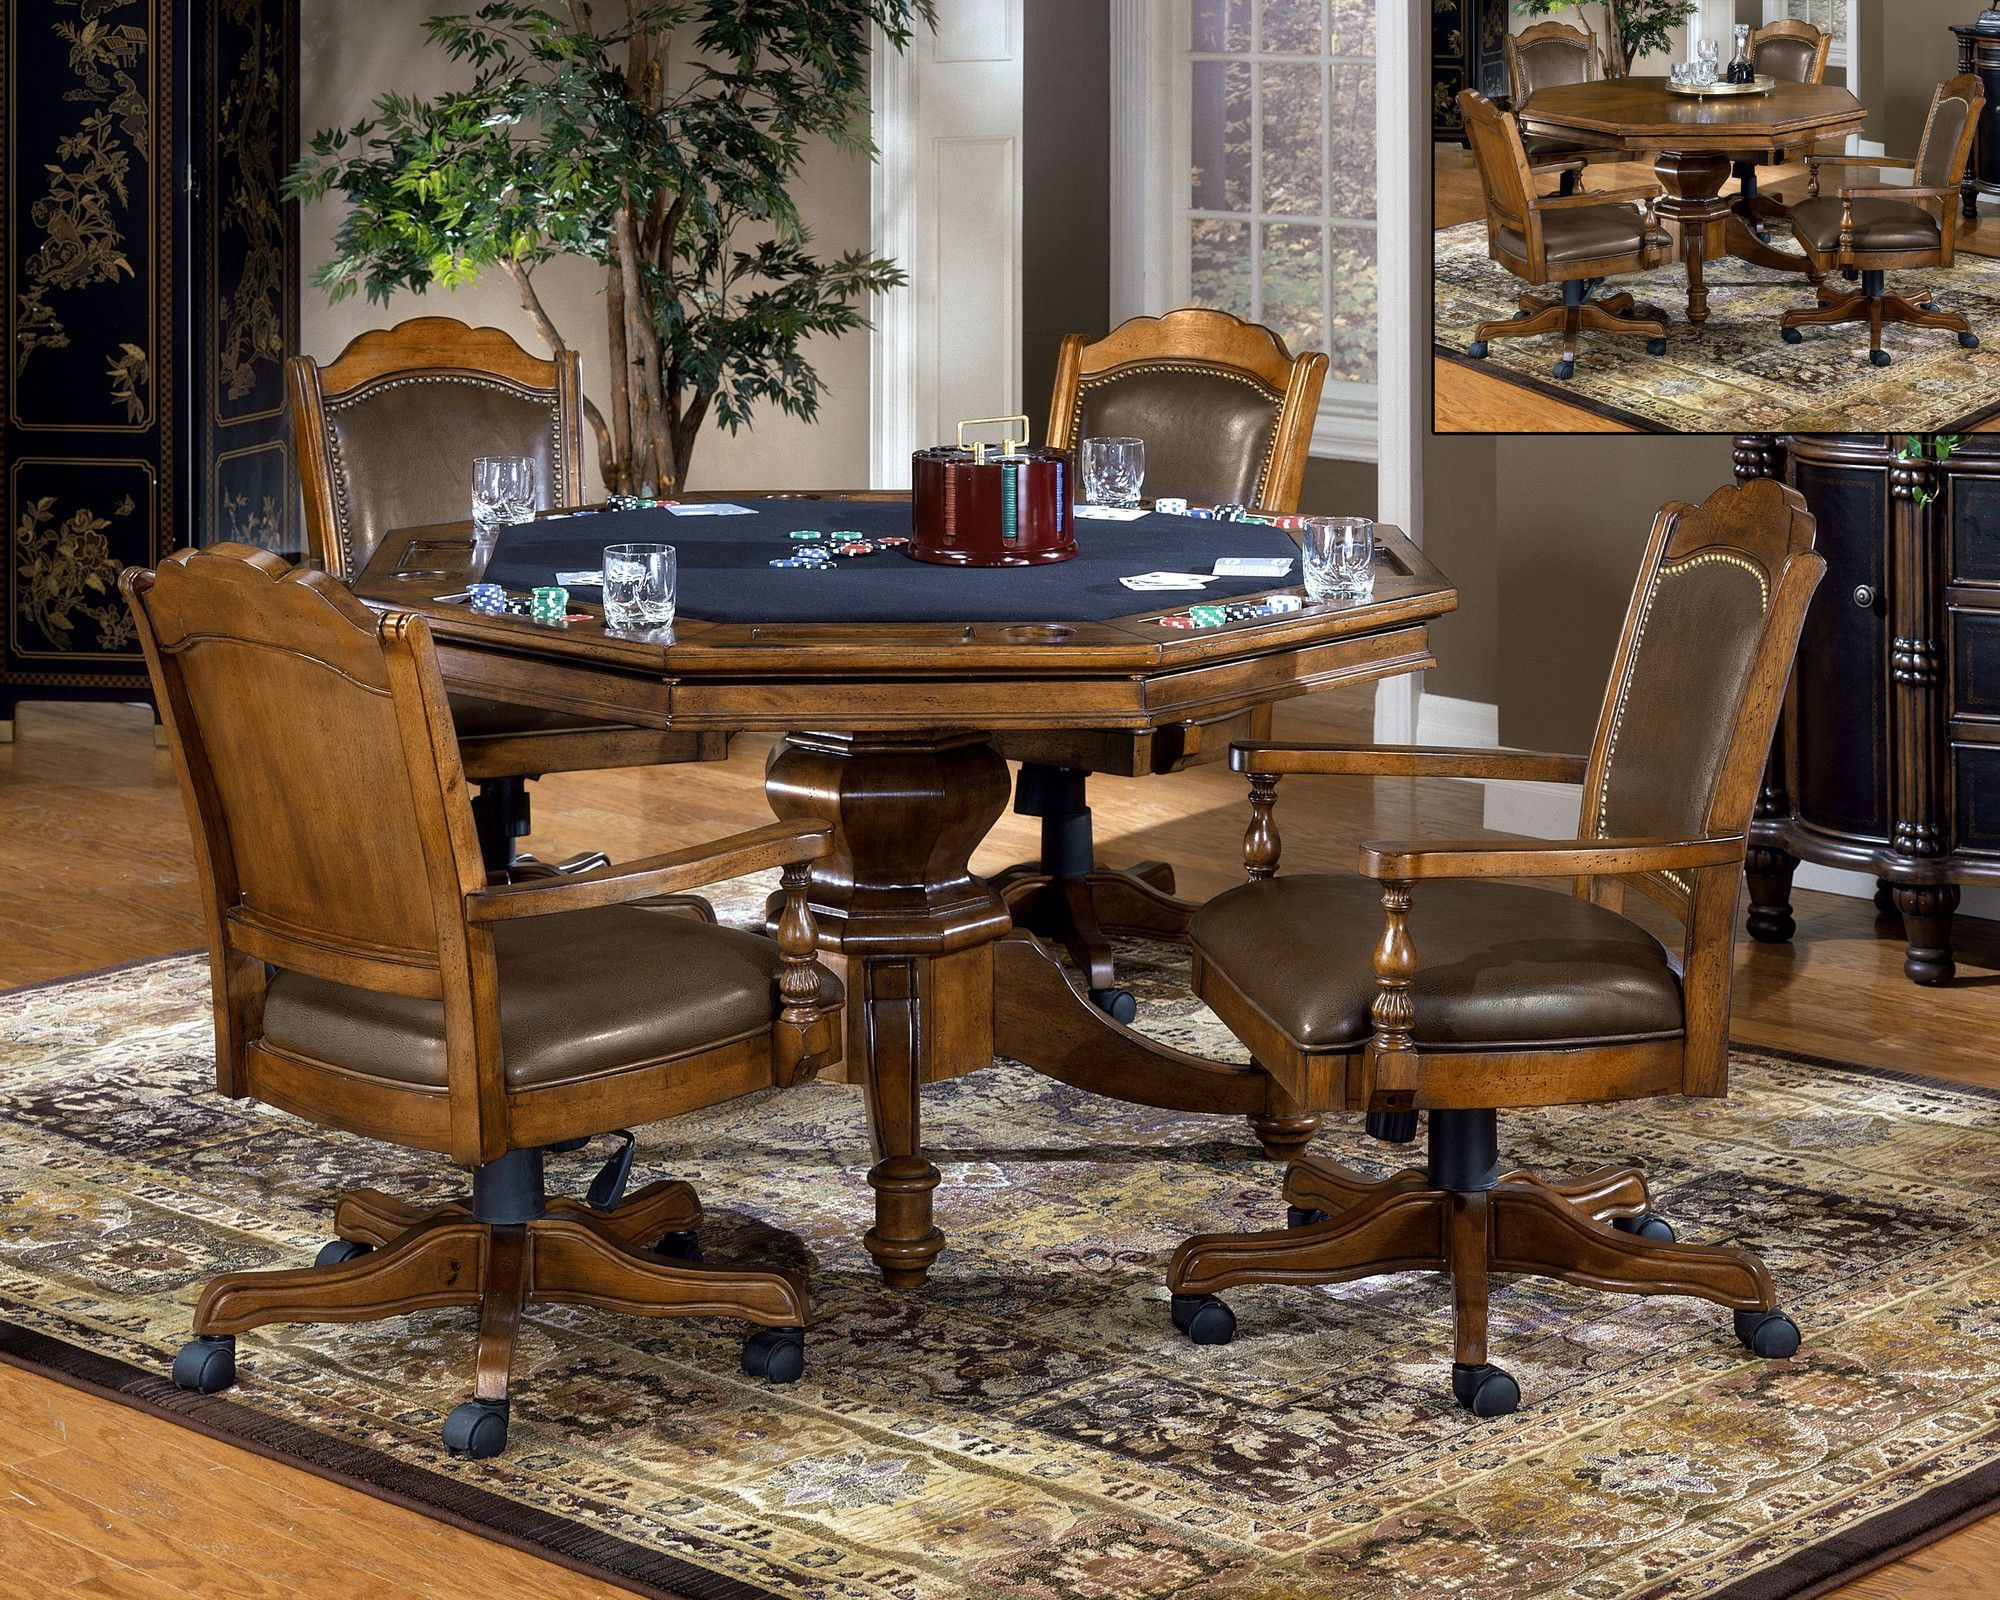 Home poker table and chairs set coiffeur mandelieu casino